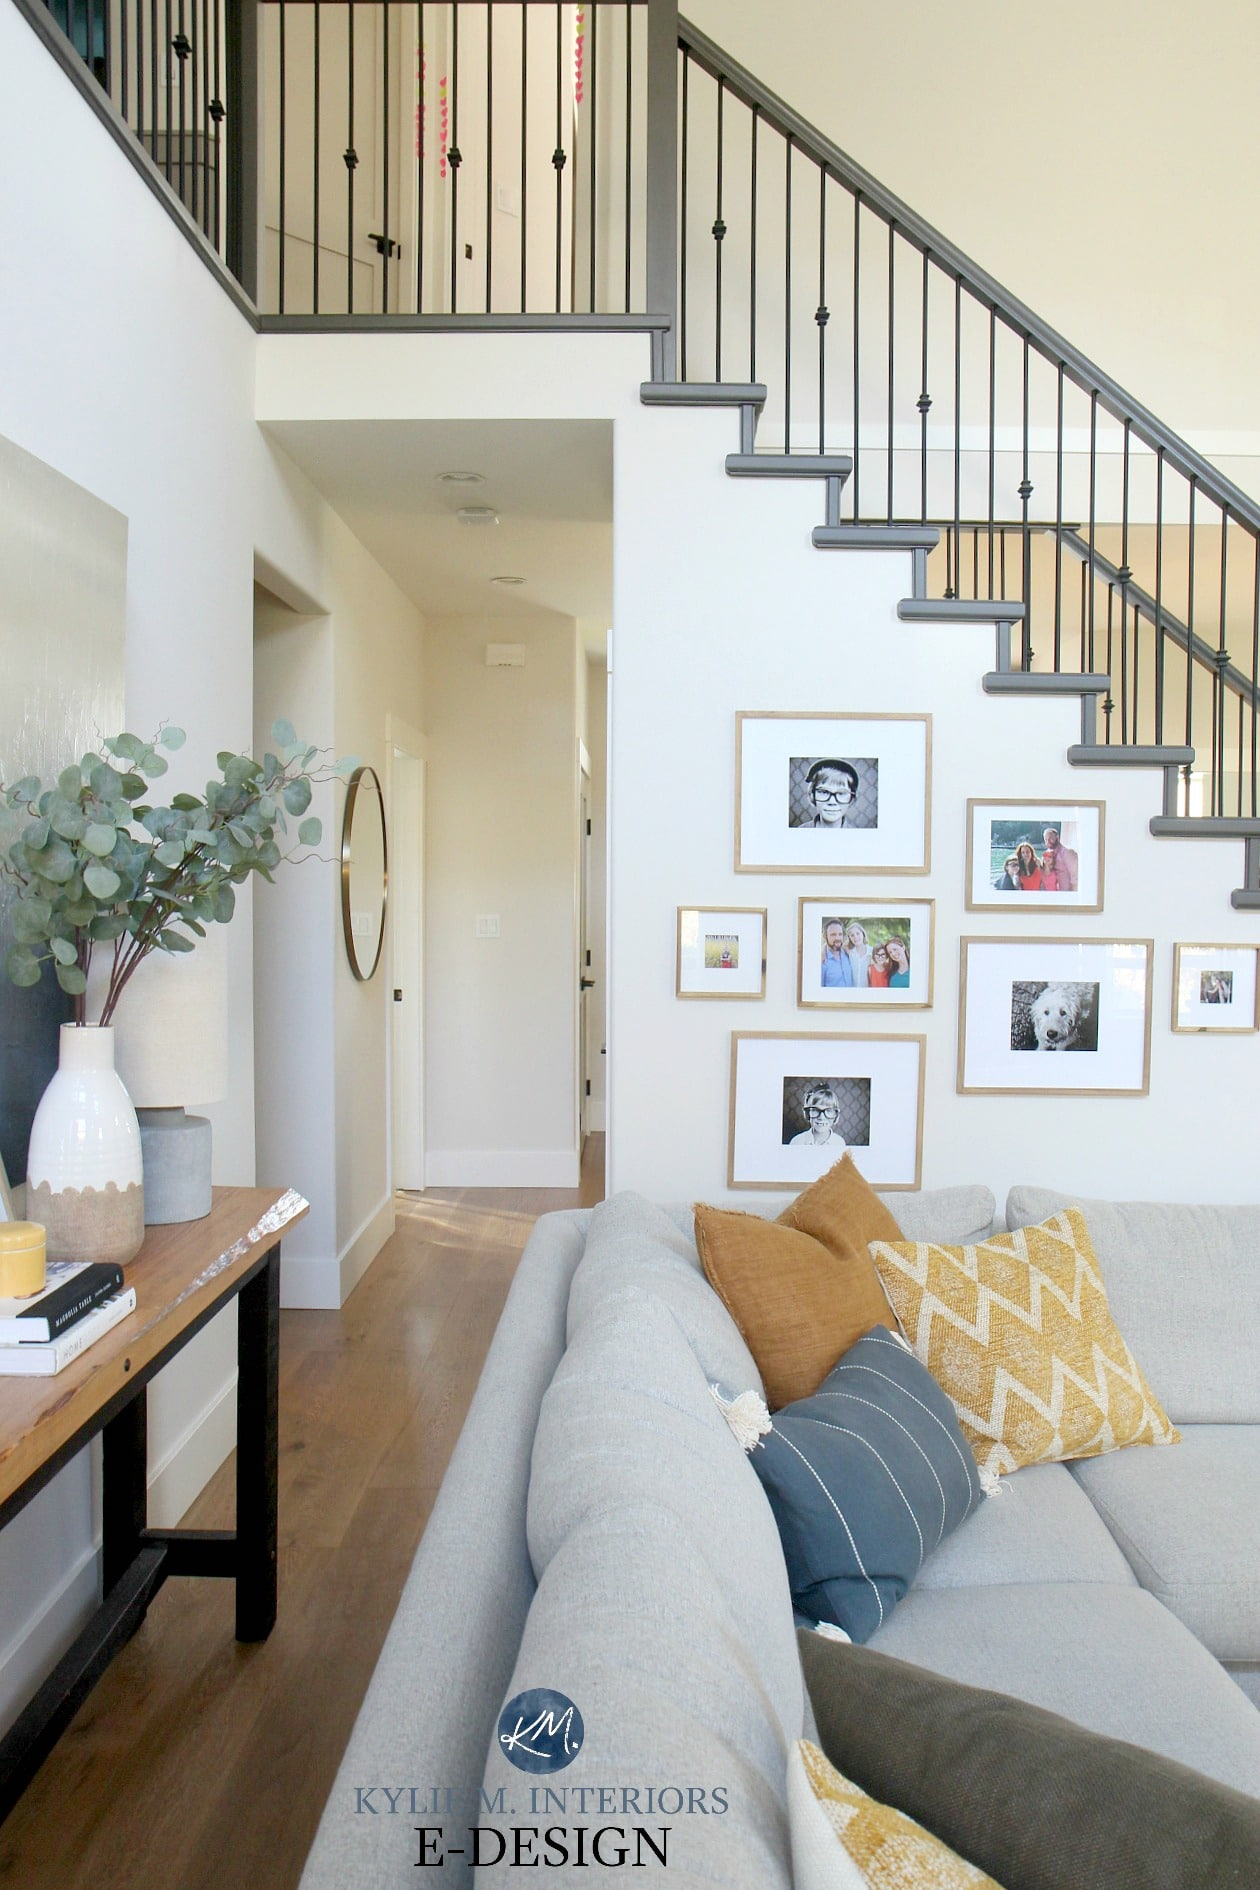 Open layout, livingroom, tall ceiling, vaulted, Benjamin Moore Edgecomb Gray best greige and White Dove. Sherwin Urbane Bronze painted stair railing and open staircase. DIY Decorating and Design ideas